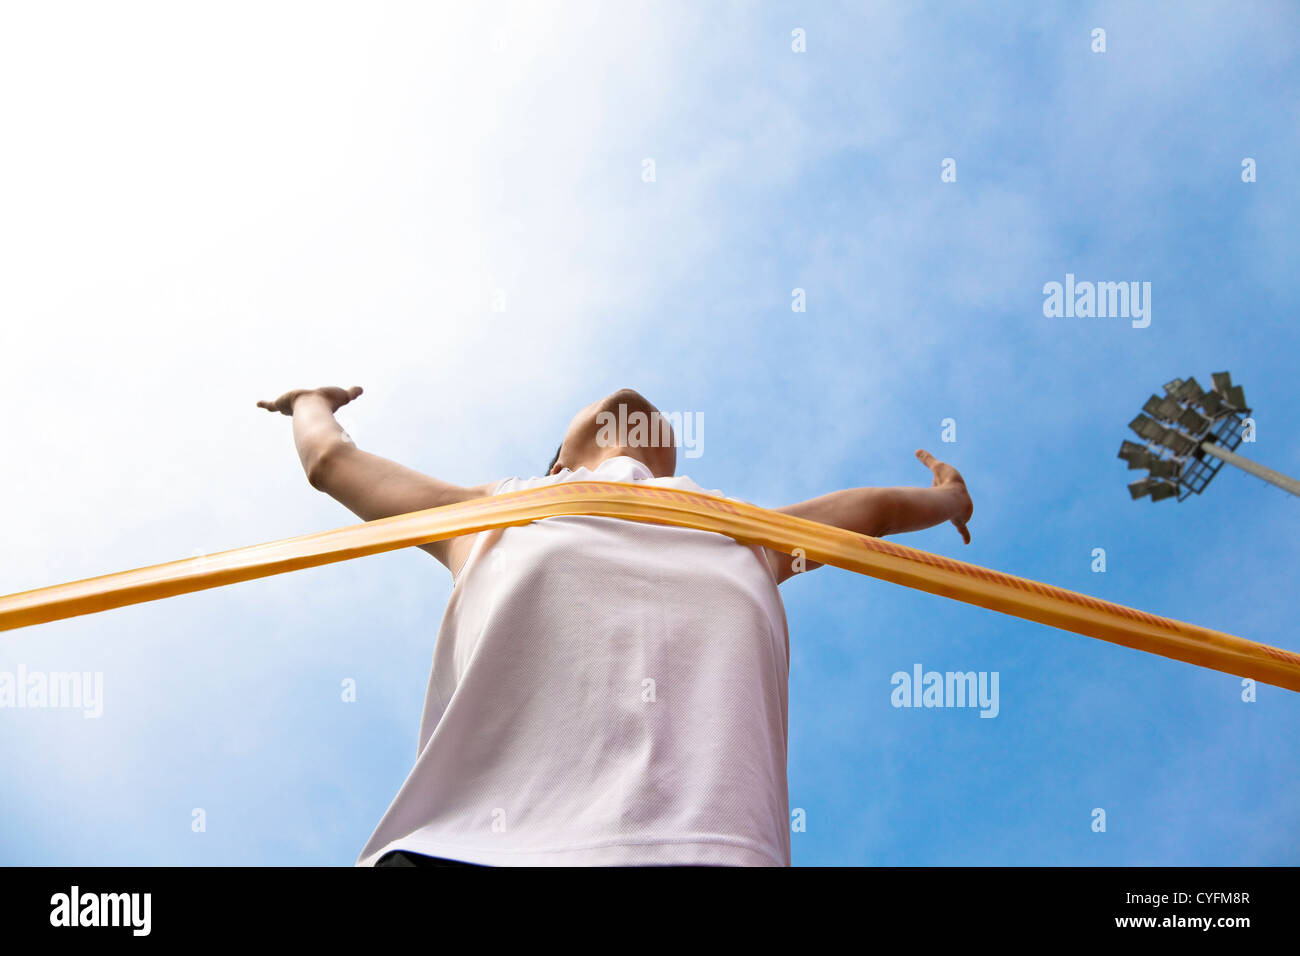 Winning athlete with cloud background - Stock Image